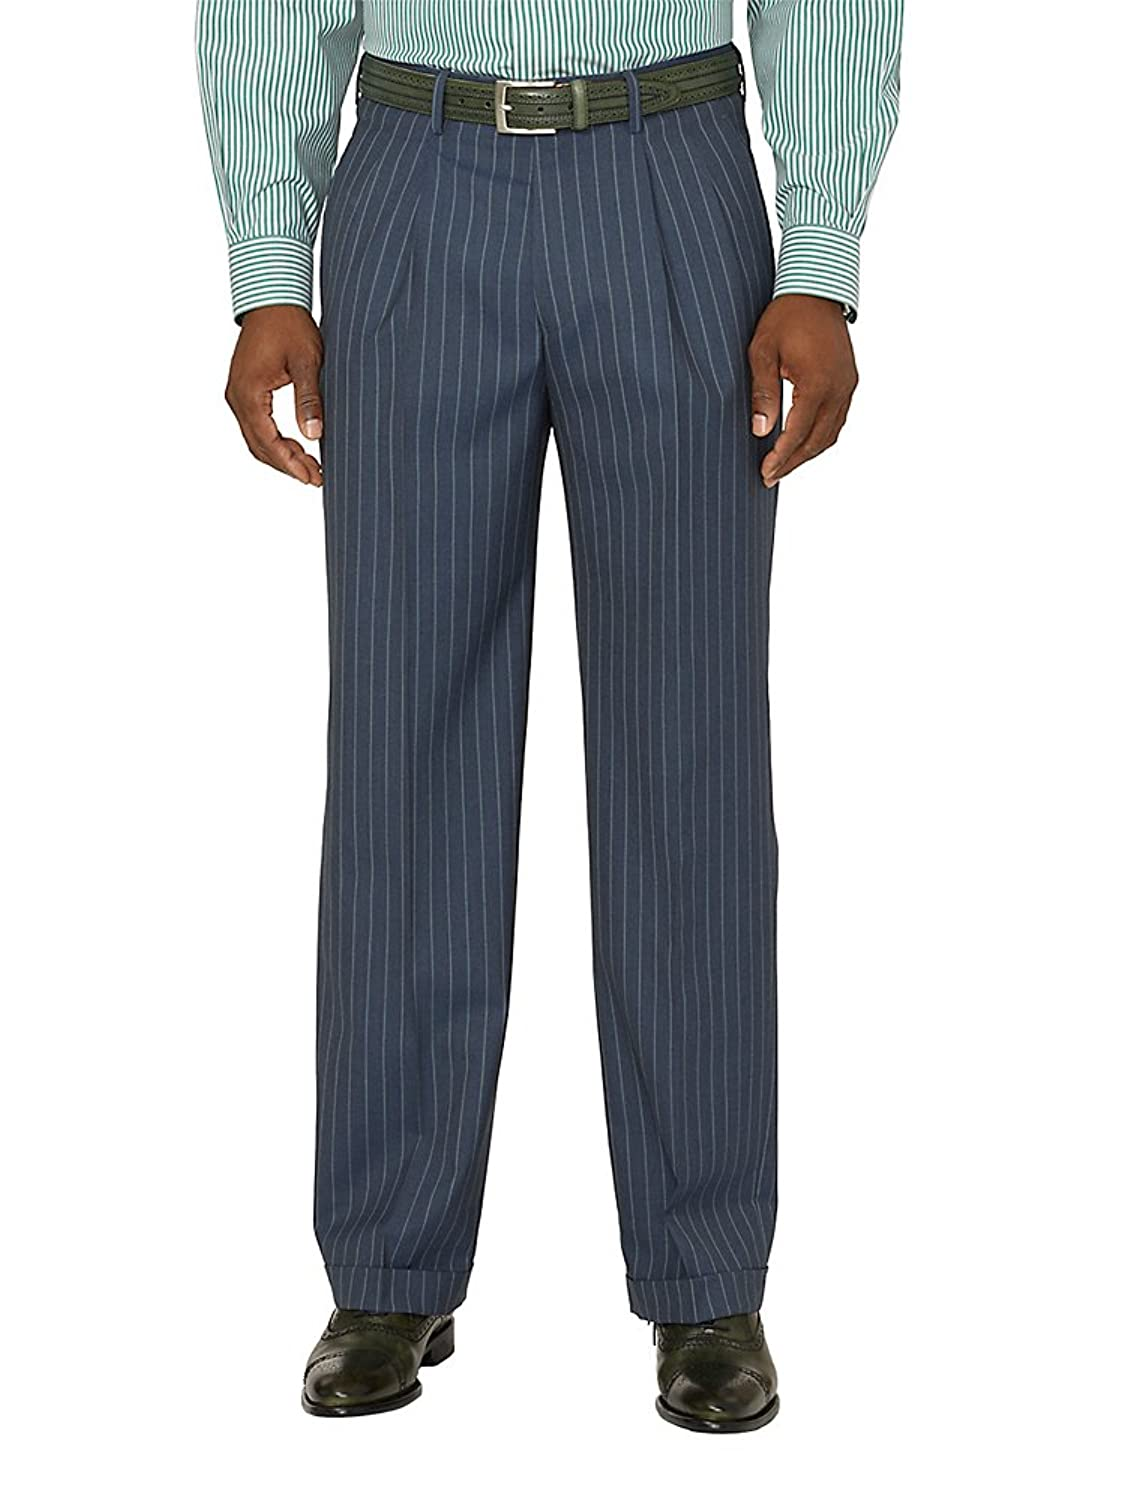 1940s Trousers, Mens Wide Leg Pants Paul Fredrick Mens Wool Stripe Pleated Pants $99.95 AT vintagedancer.com